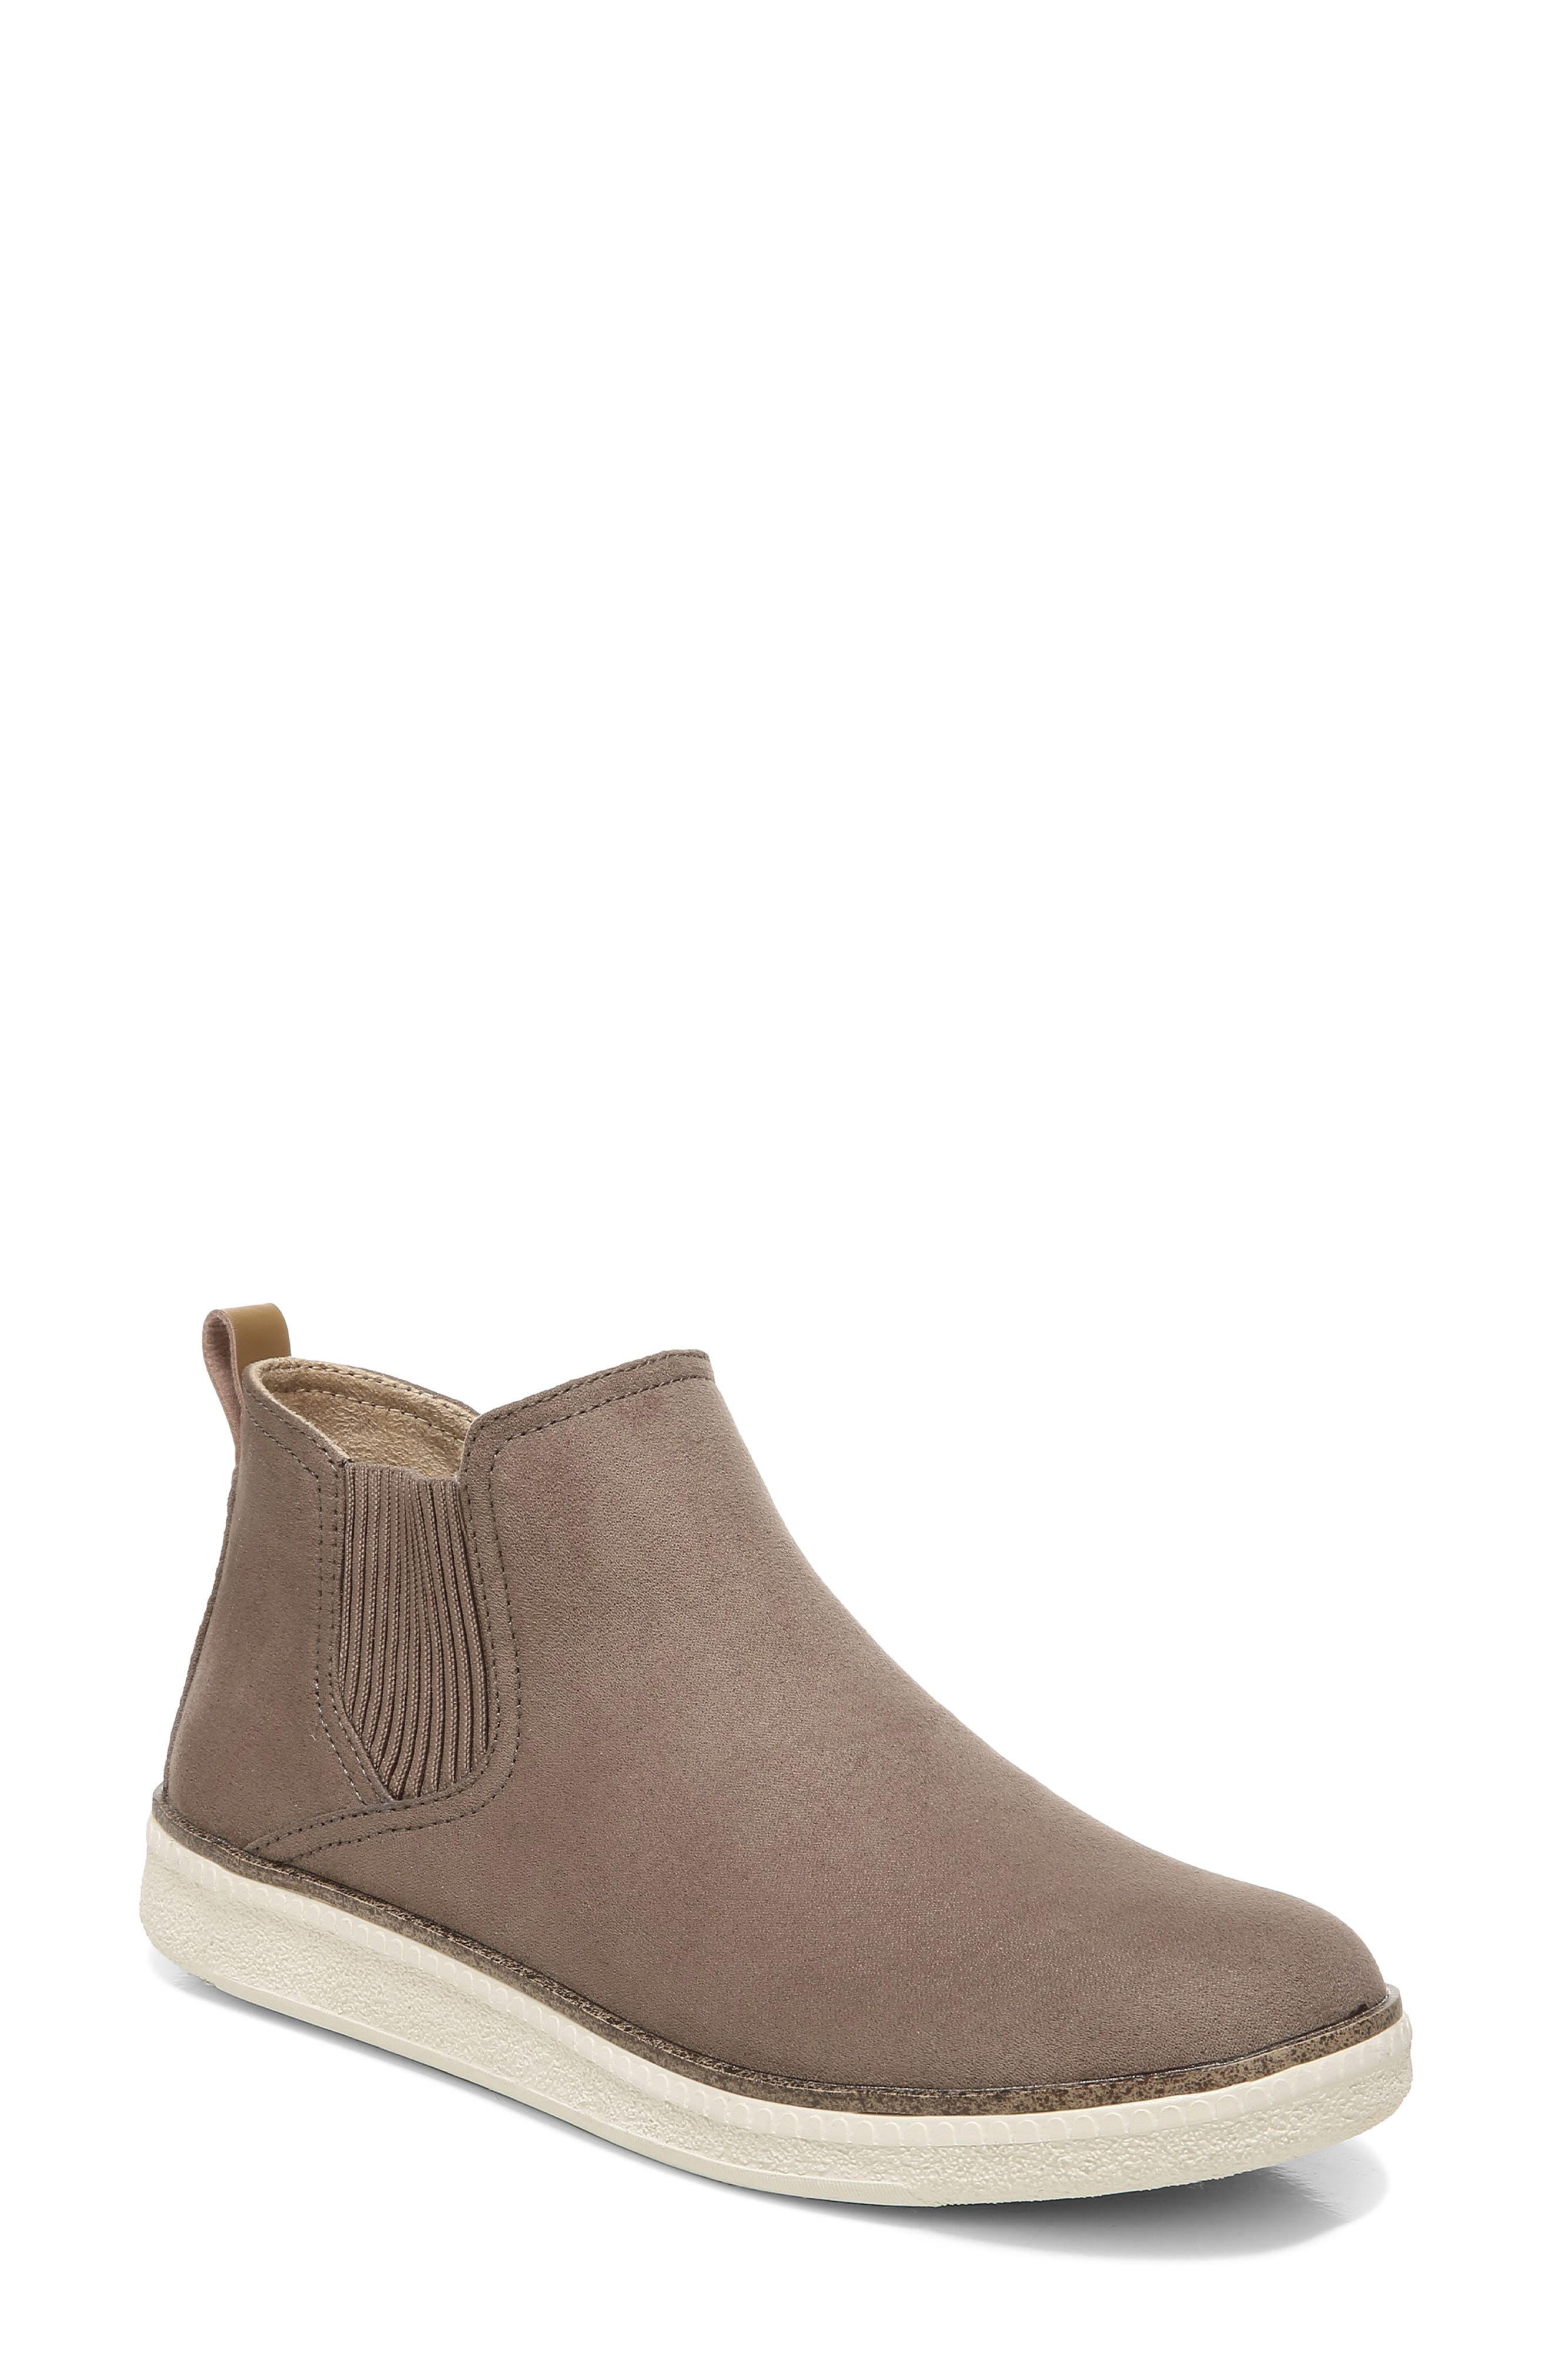 See Me Chelsea Boot